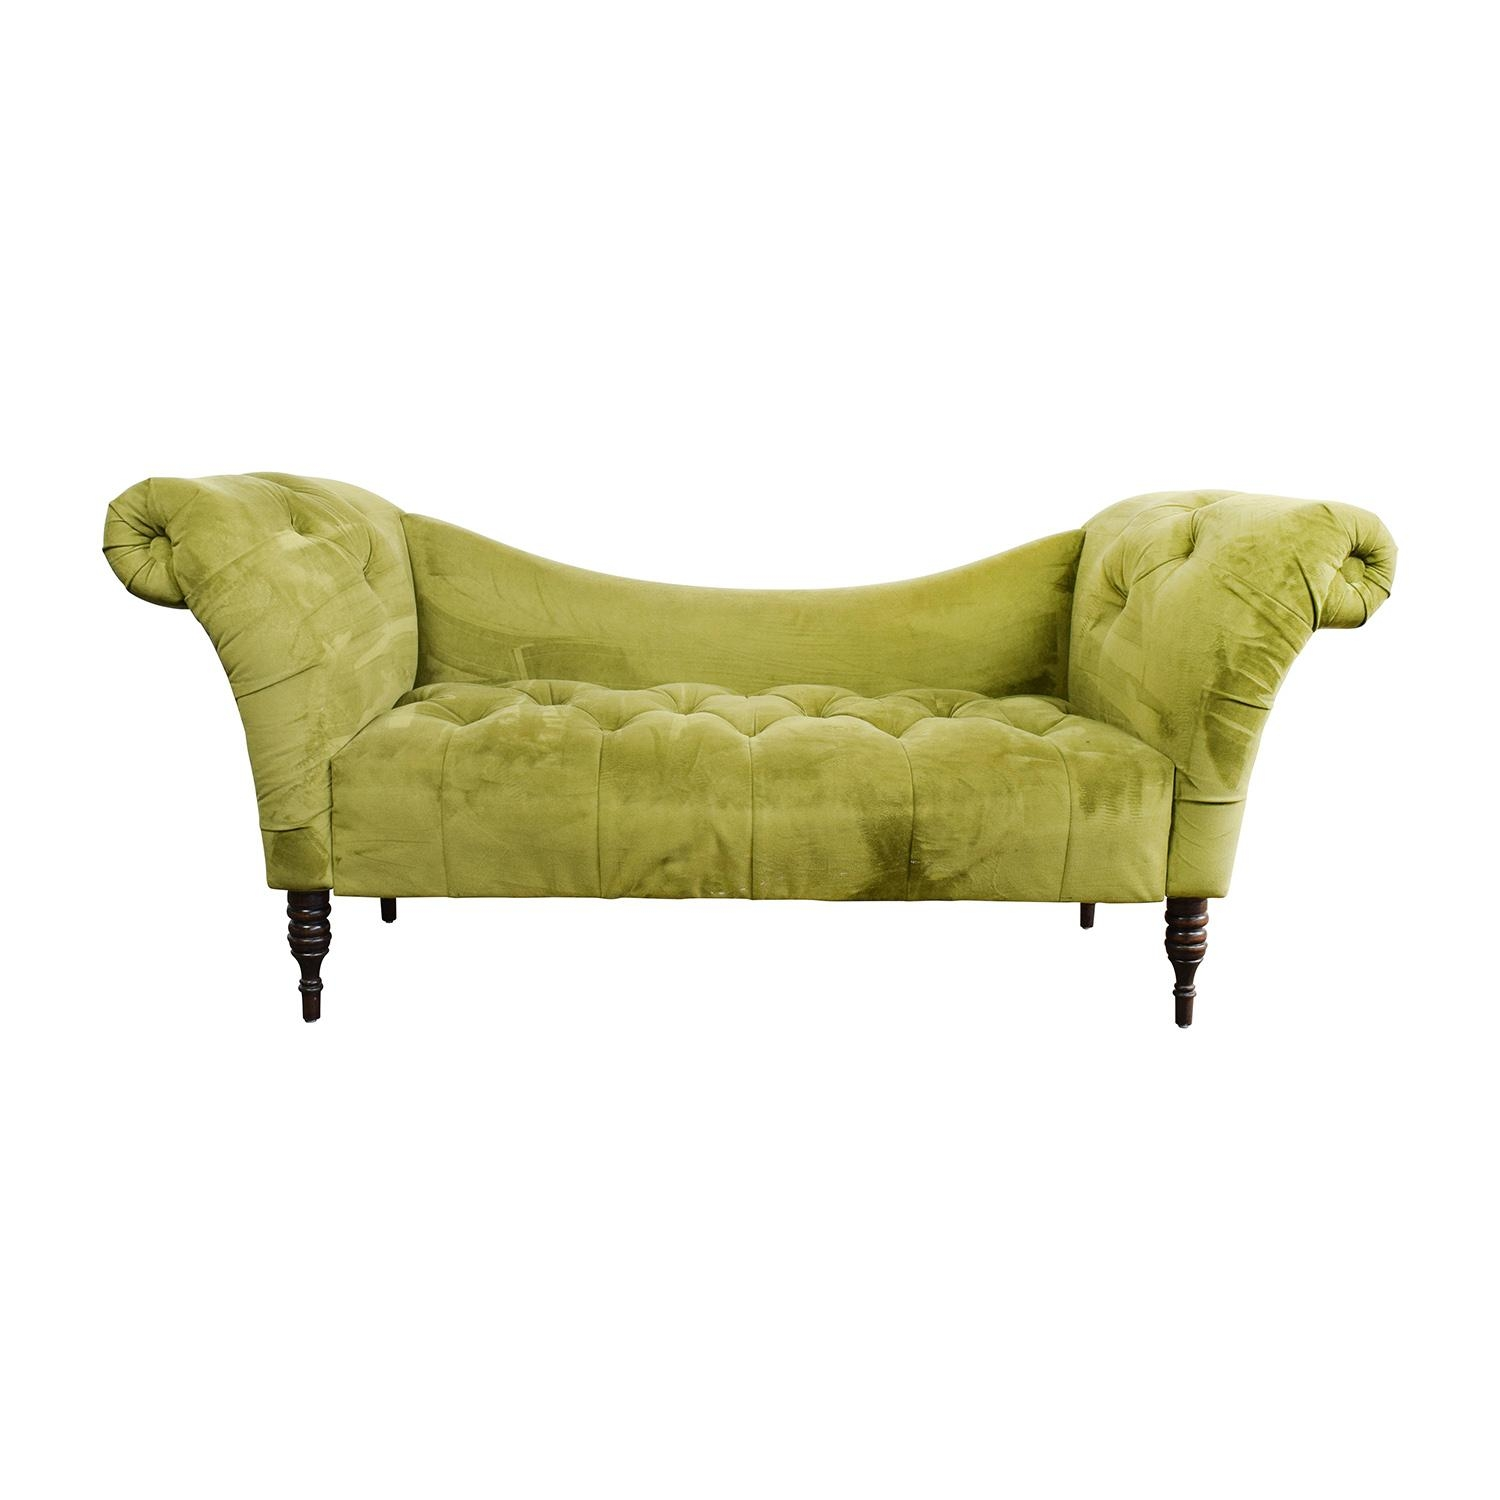 48% Off - Ashley Furniture Ashley Furniture Gray Fabric Sofa / Sofas inside Antoinette Sofas